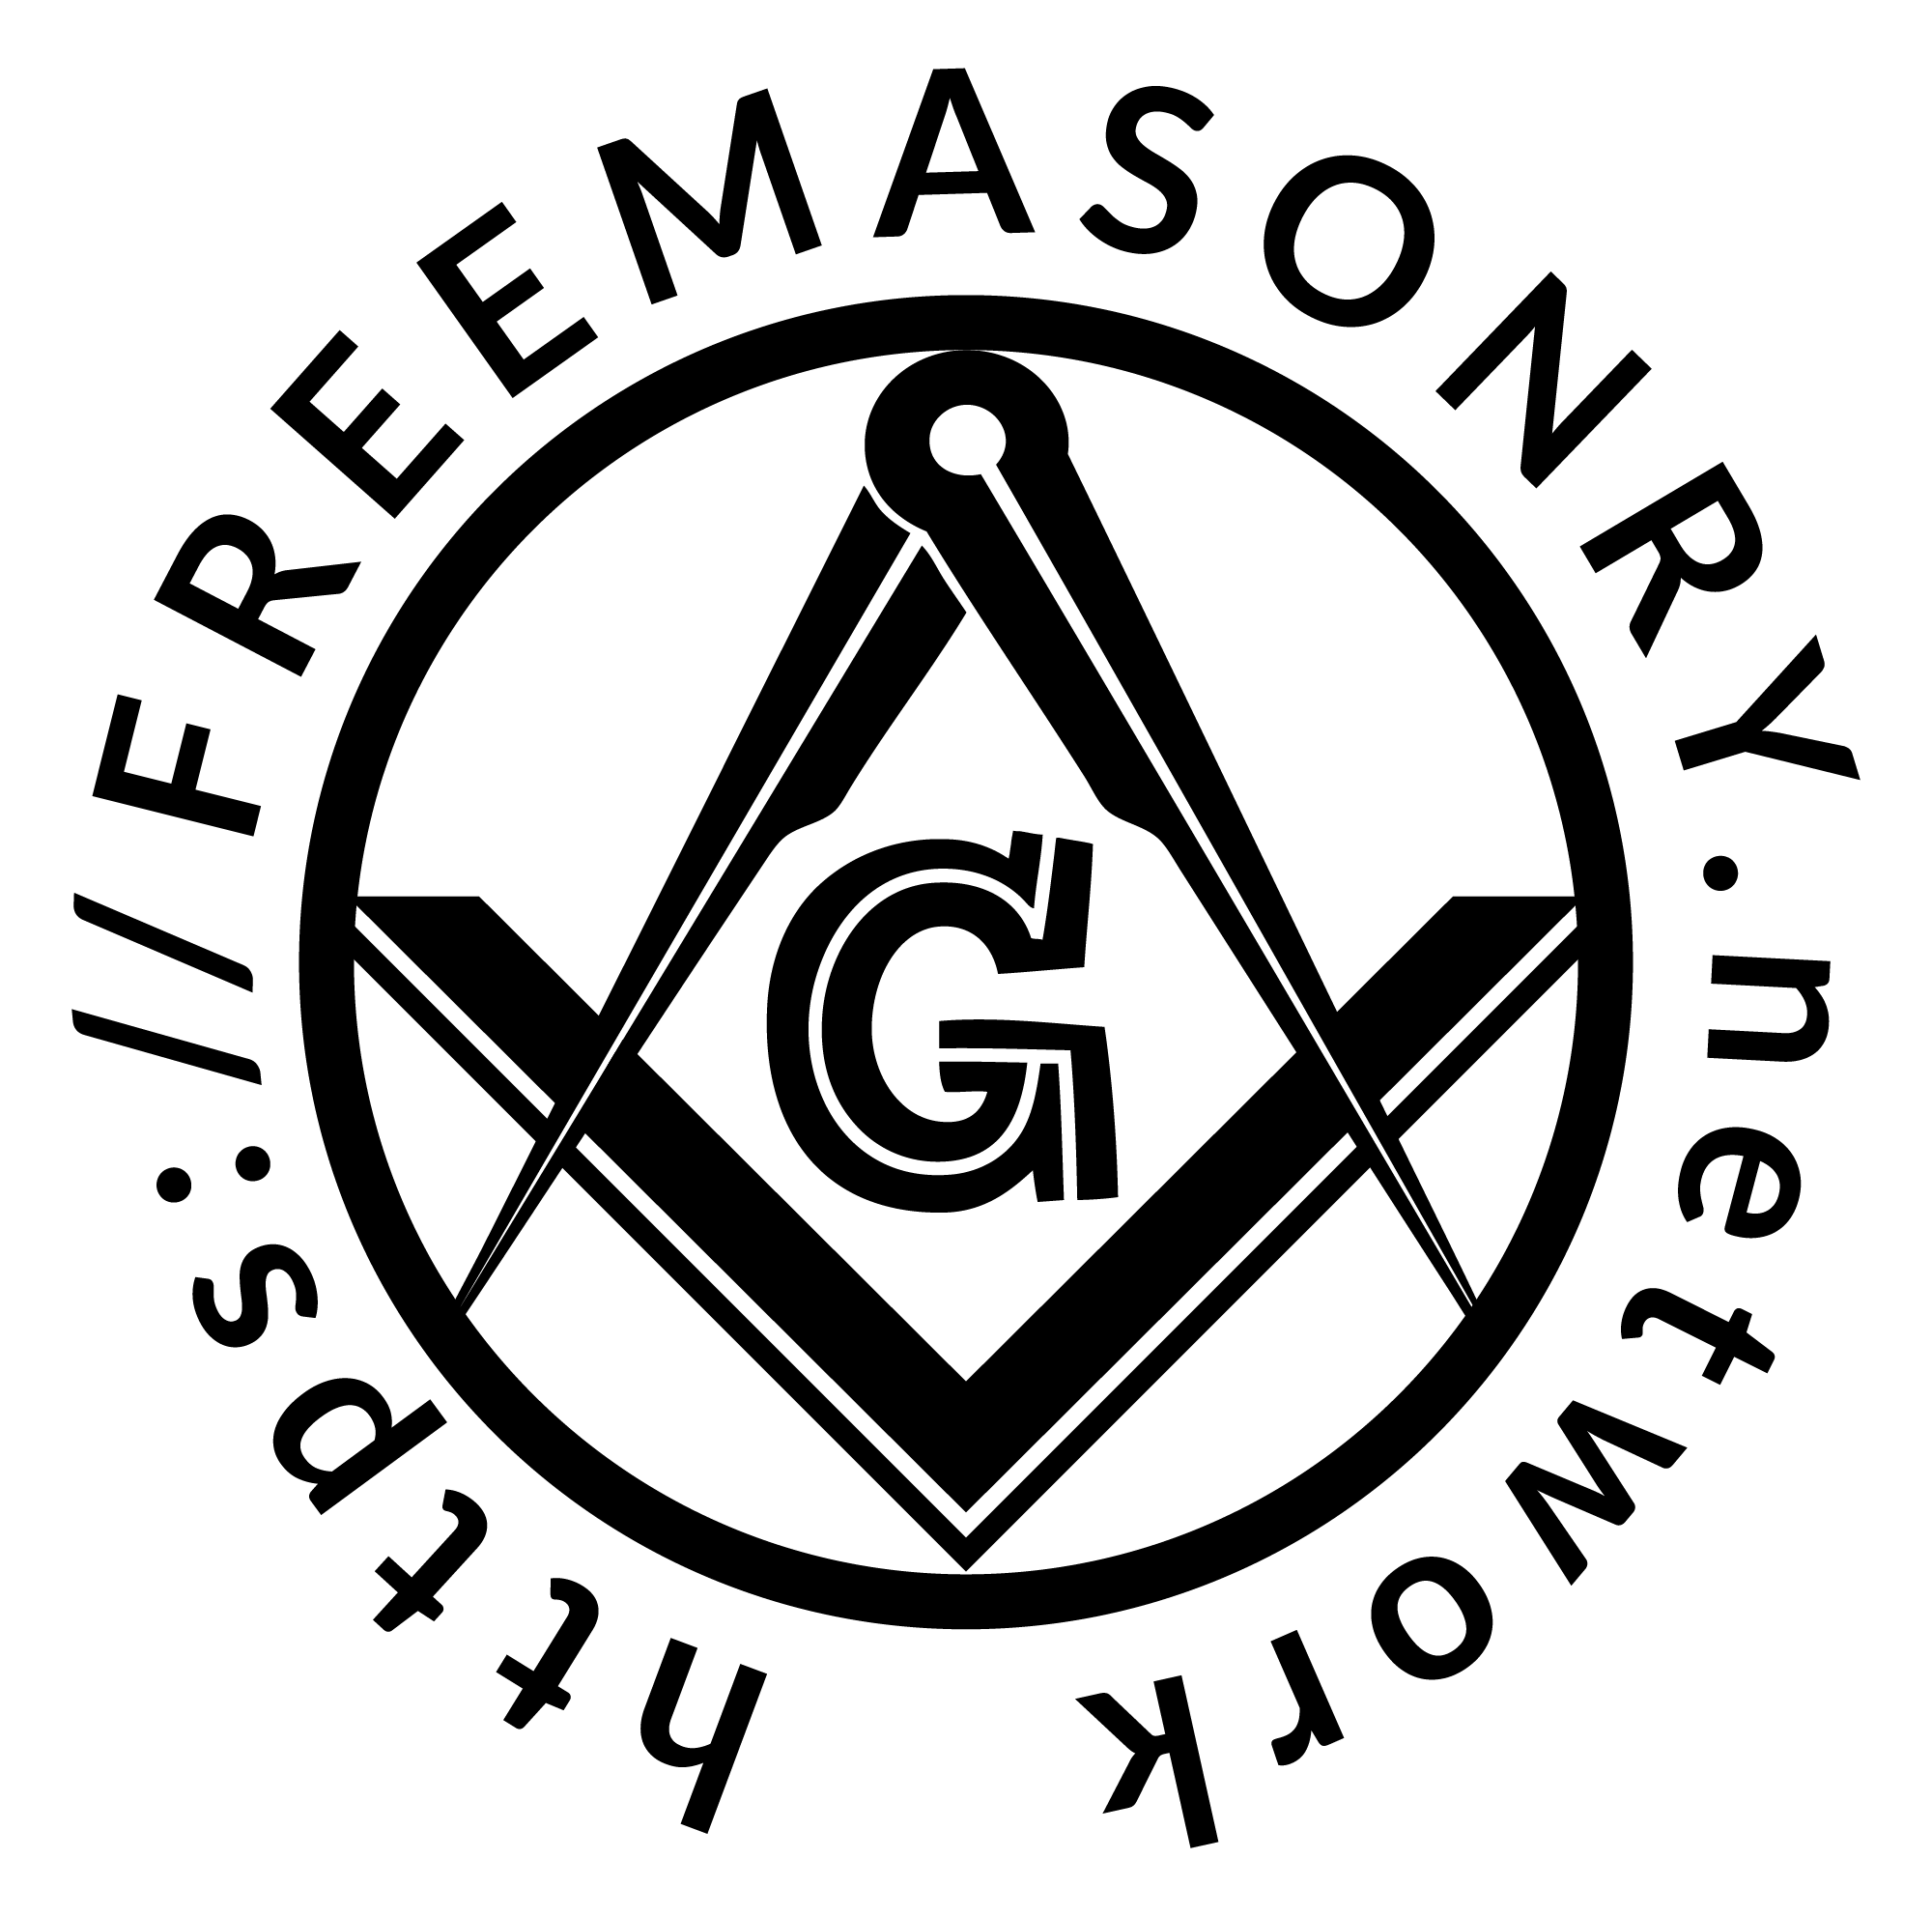 SHOULD MASONRY BE